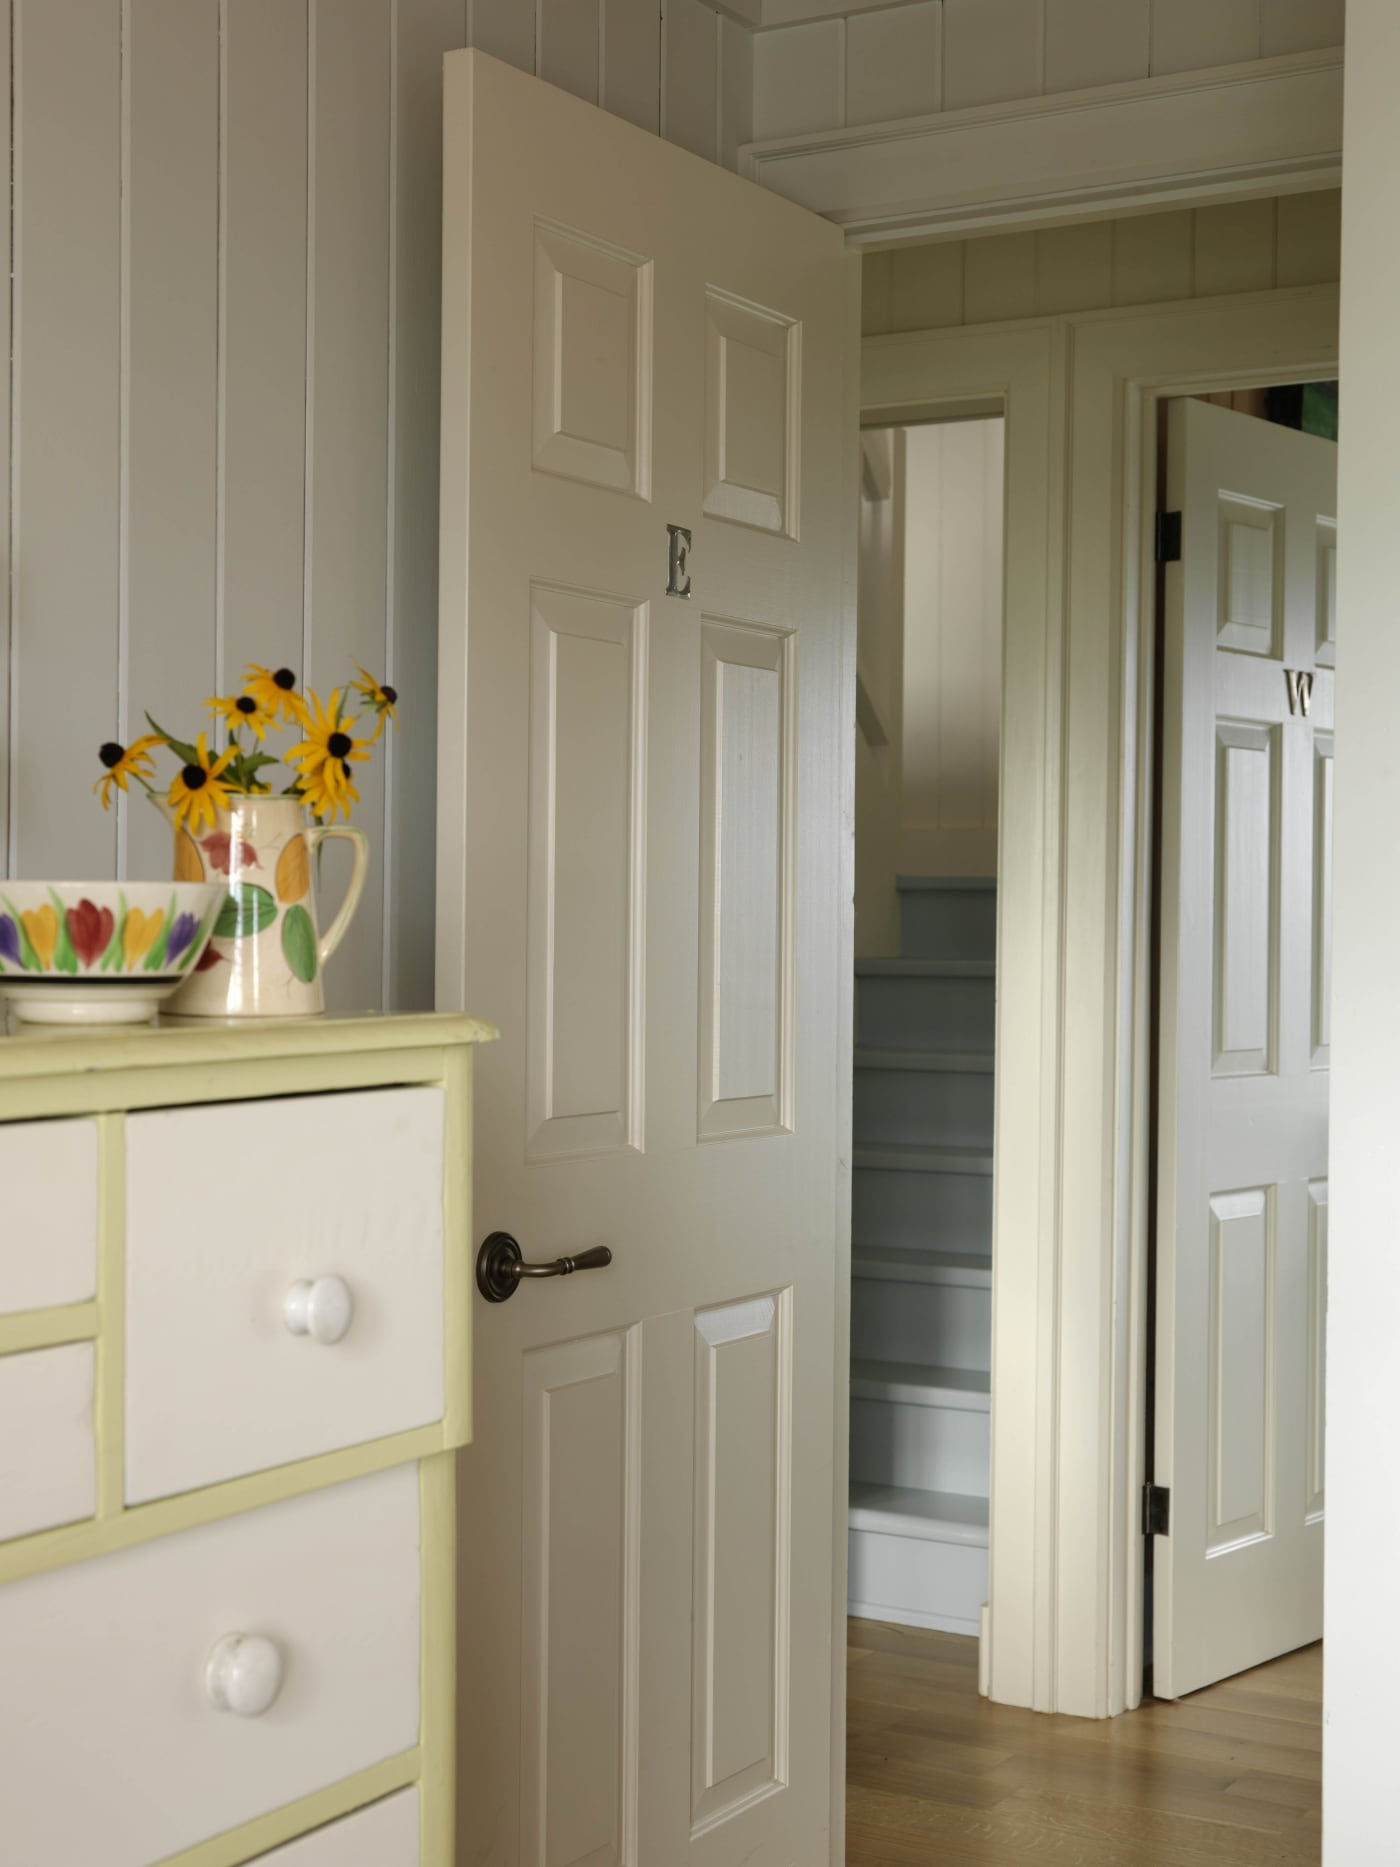 White and yellow dresser with mirror and decorations on it. #SarahRichardson #cottagestyle